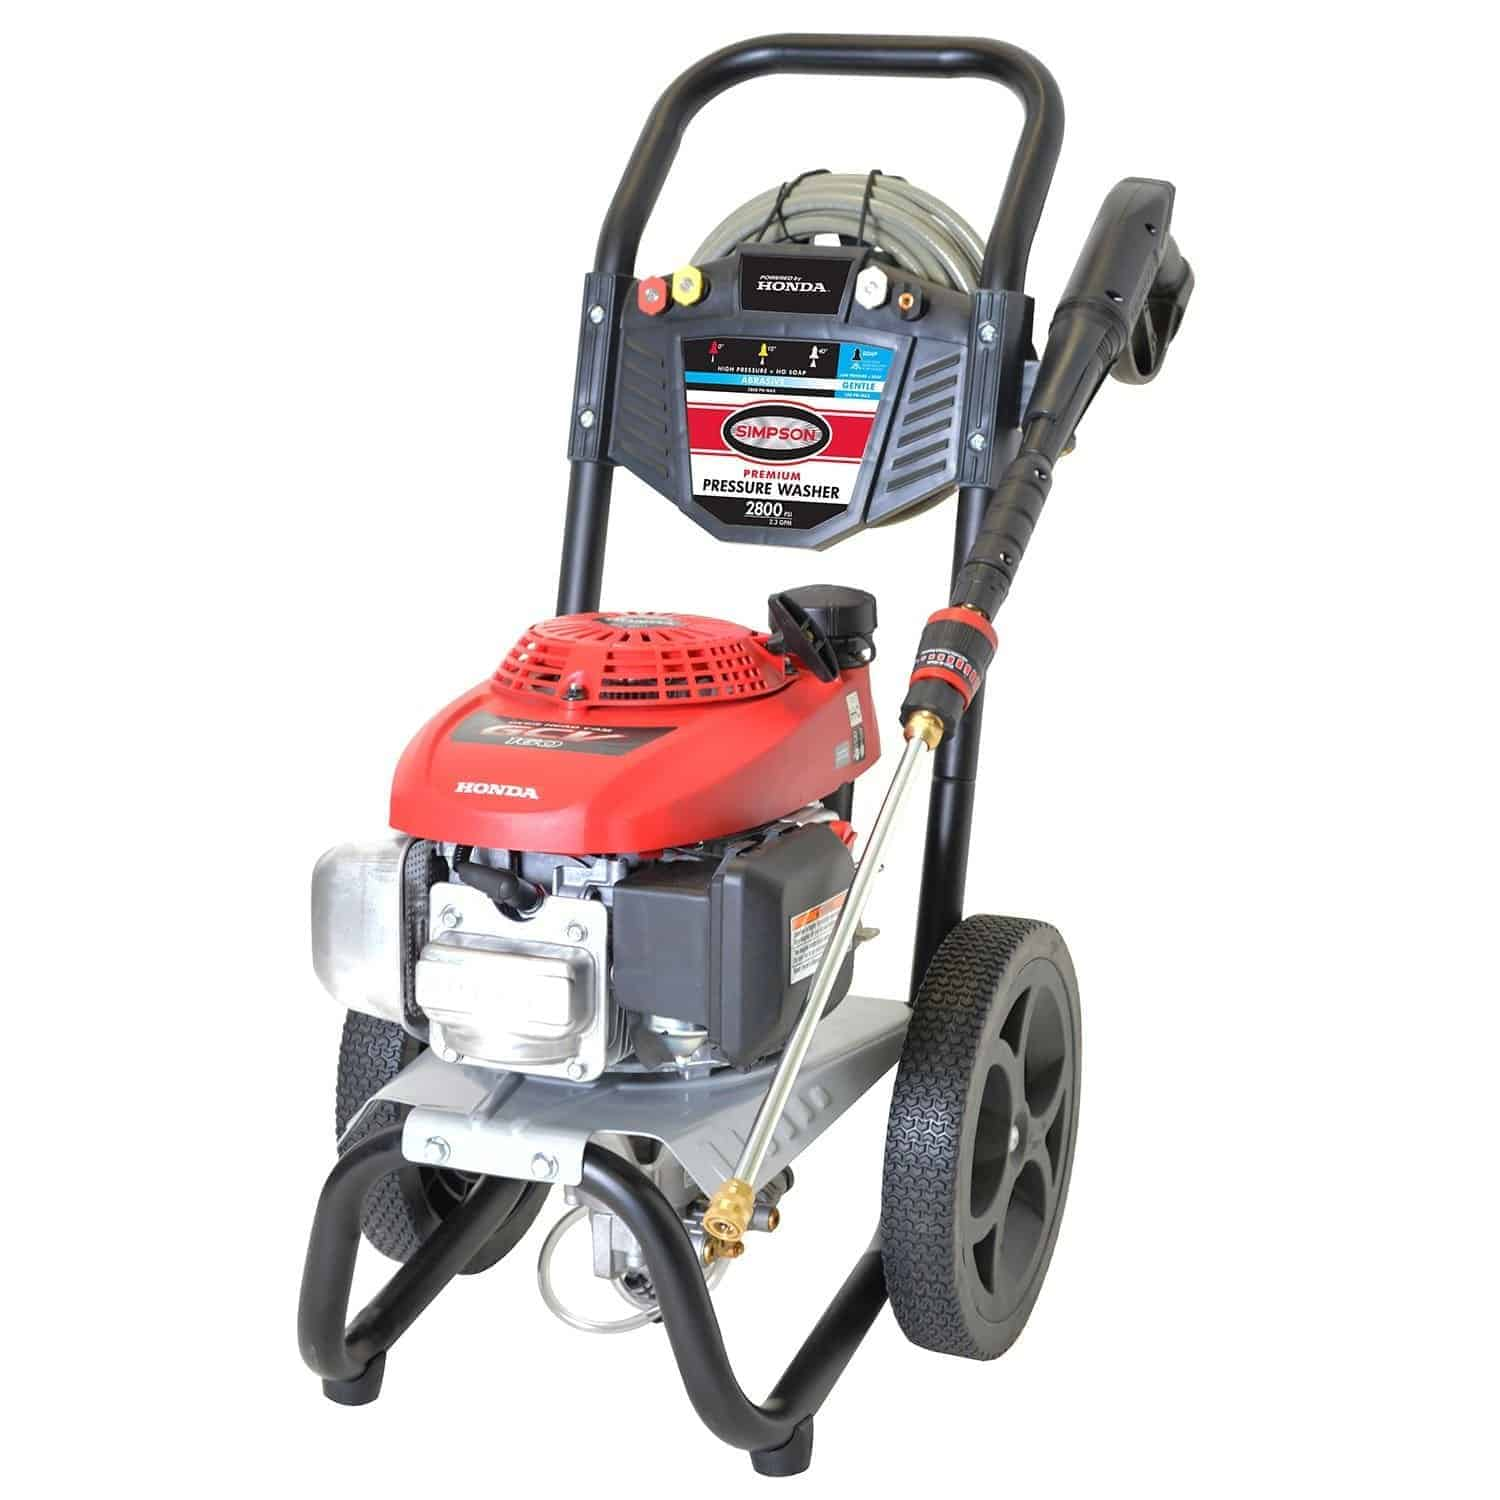 Simpson megashot 2800 gas pressure washer review for Power washer with honda motor